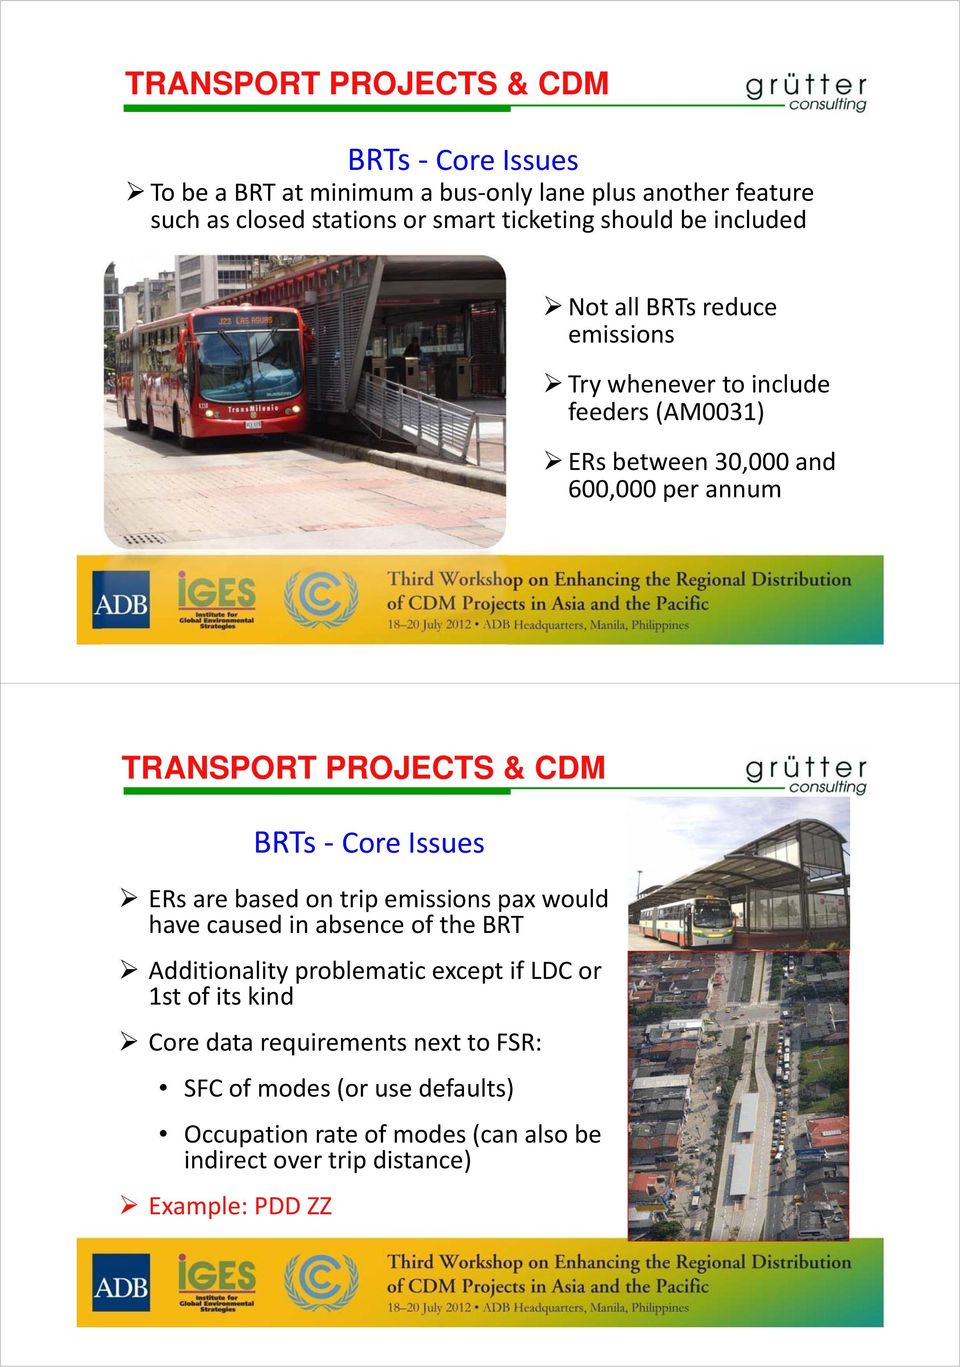 & CDM ERs are based on trip emissions pax would have caused in absence of the BRT Additionality problematic except if LDC or 1st of its kind Core data